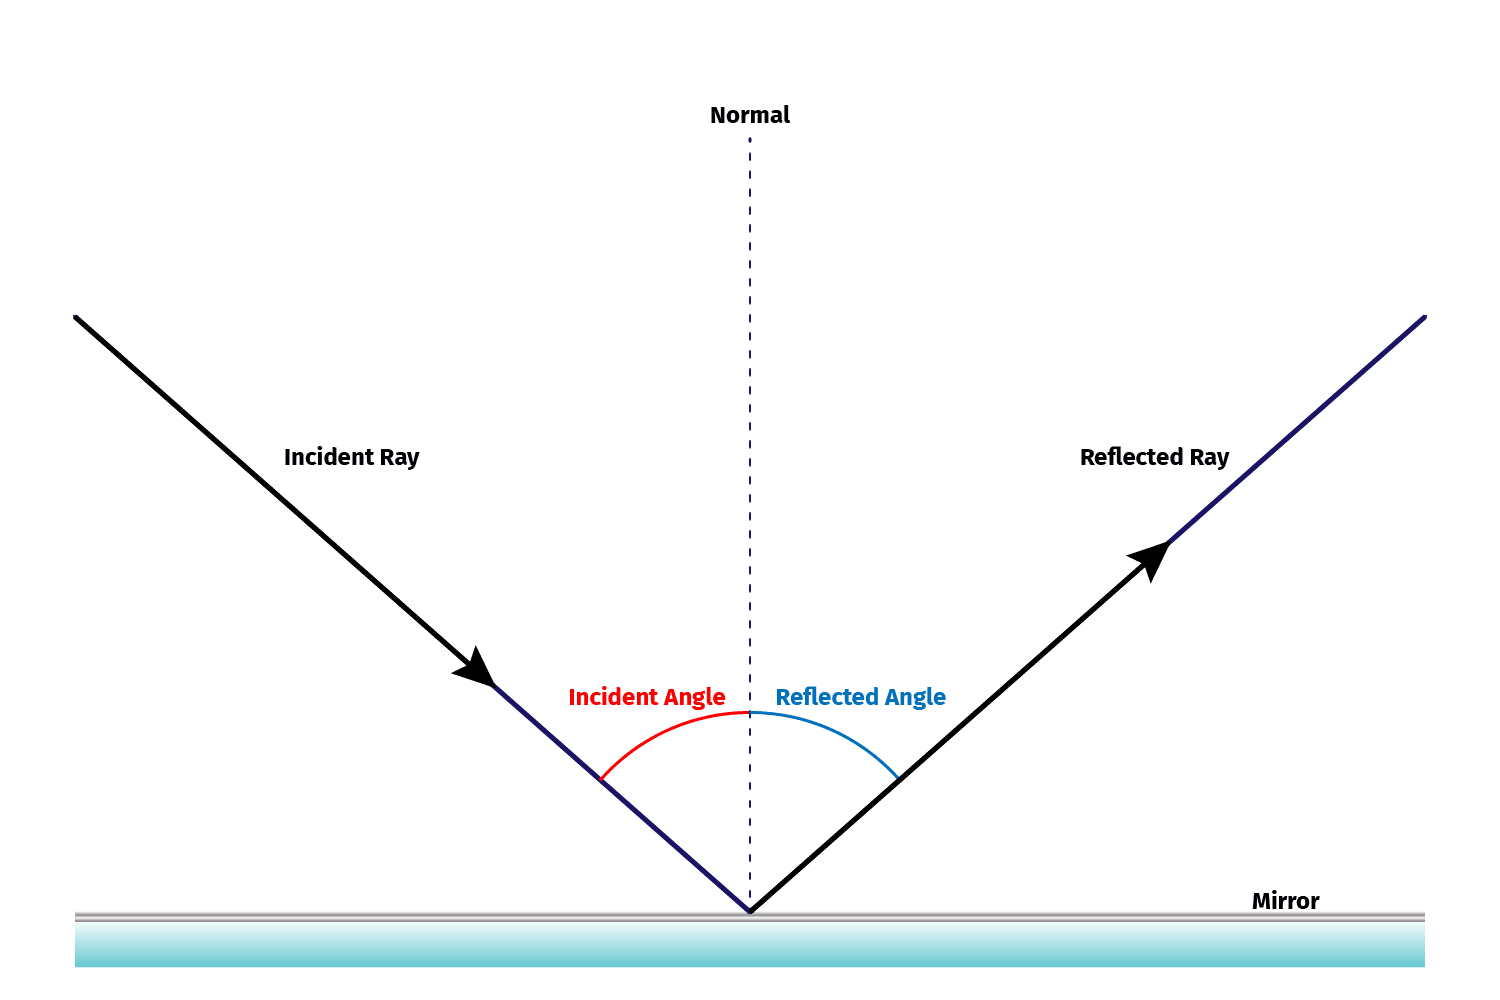 Law Of Reflection How Works In Physics Diagram Radio Waves Also With Electric By A Twisted Structure According To The Incident And Reflected Angle Are Same Size